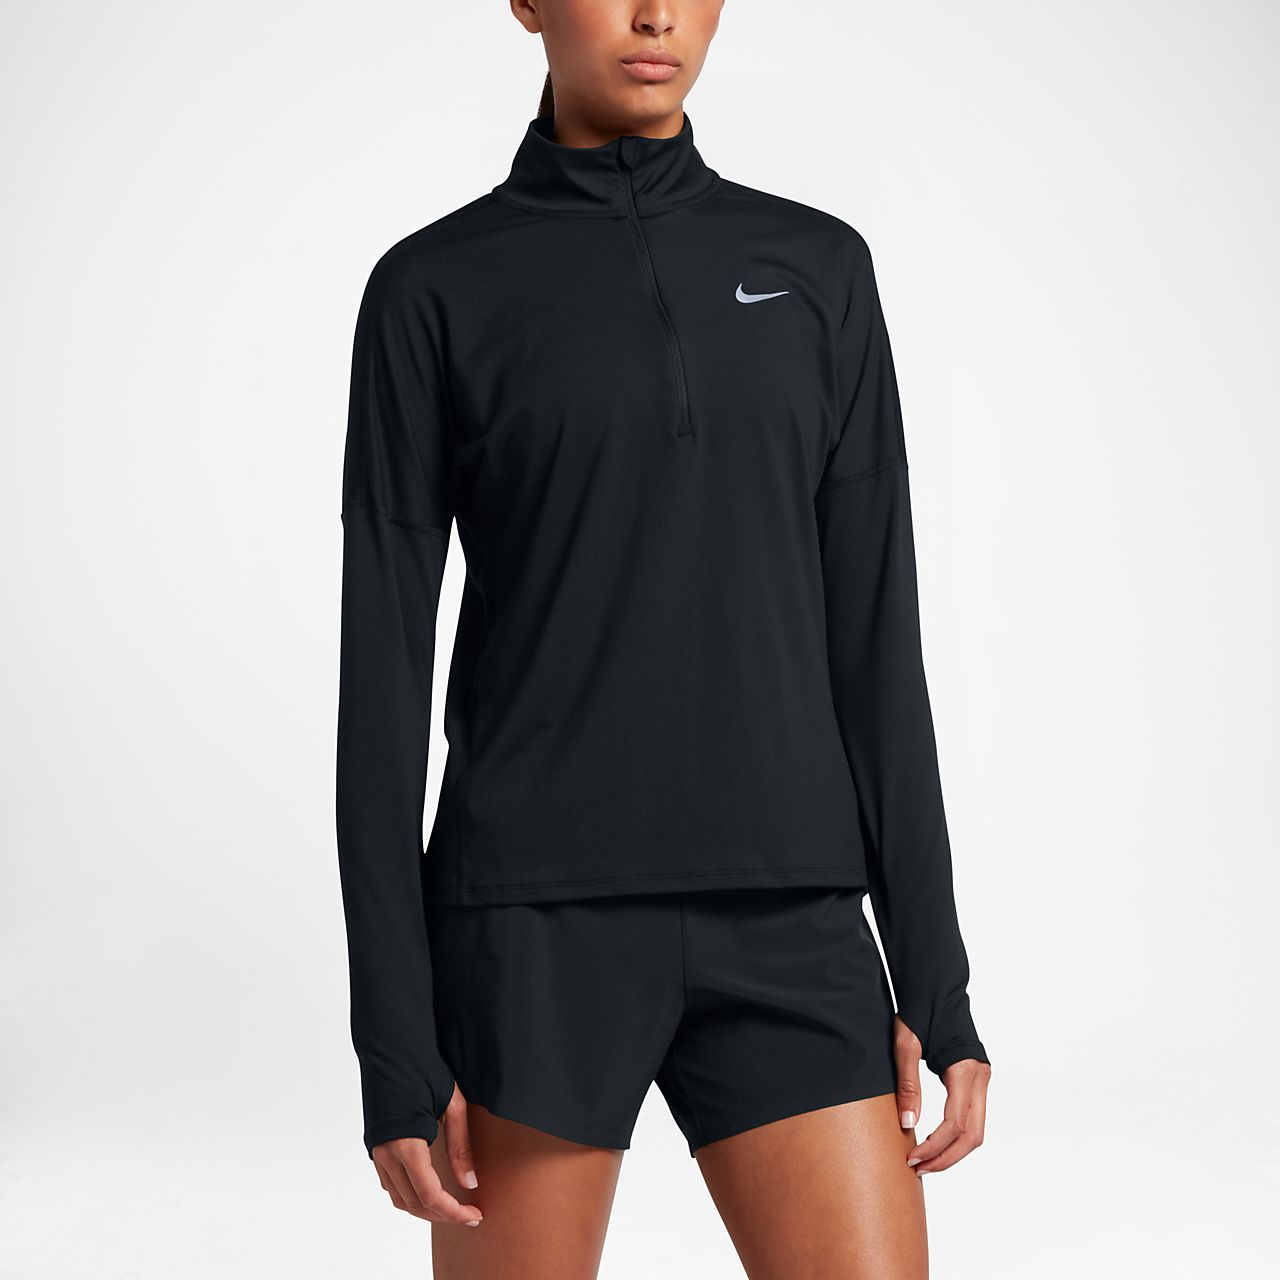 Nike Dri-FIT Element Women s Long-Sleeve Running Half-Zip Top. Nike ... 2a10b0671